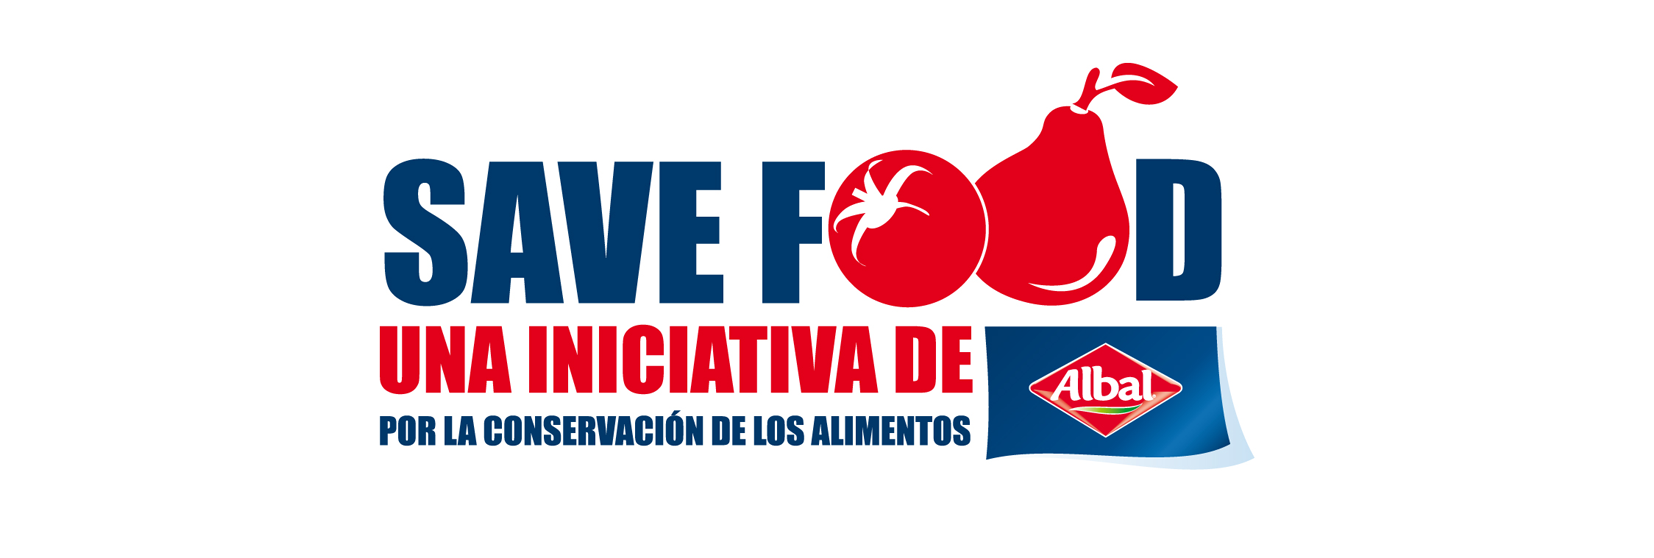 Iniciativa Save-Food de Albal(R)